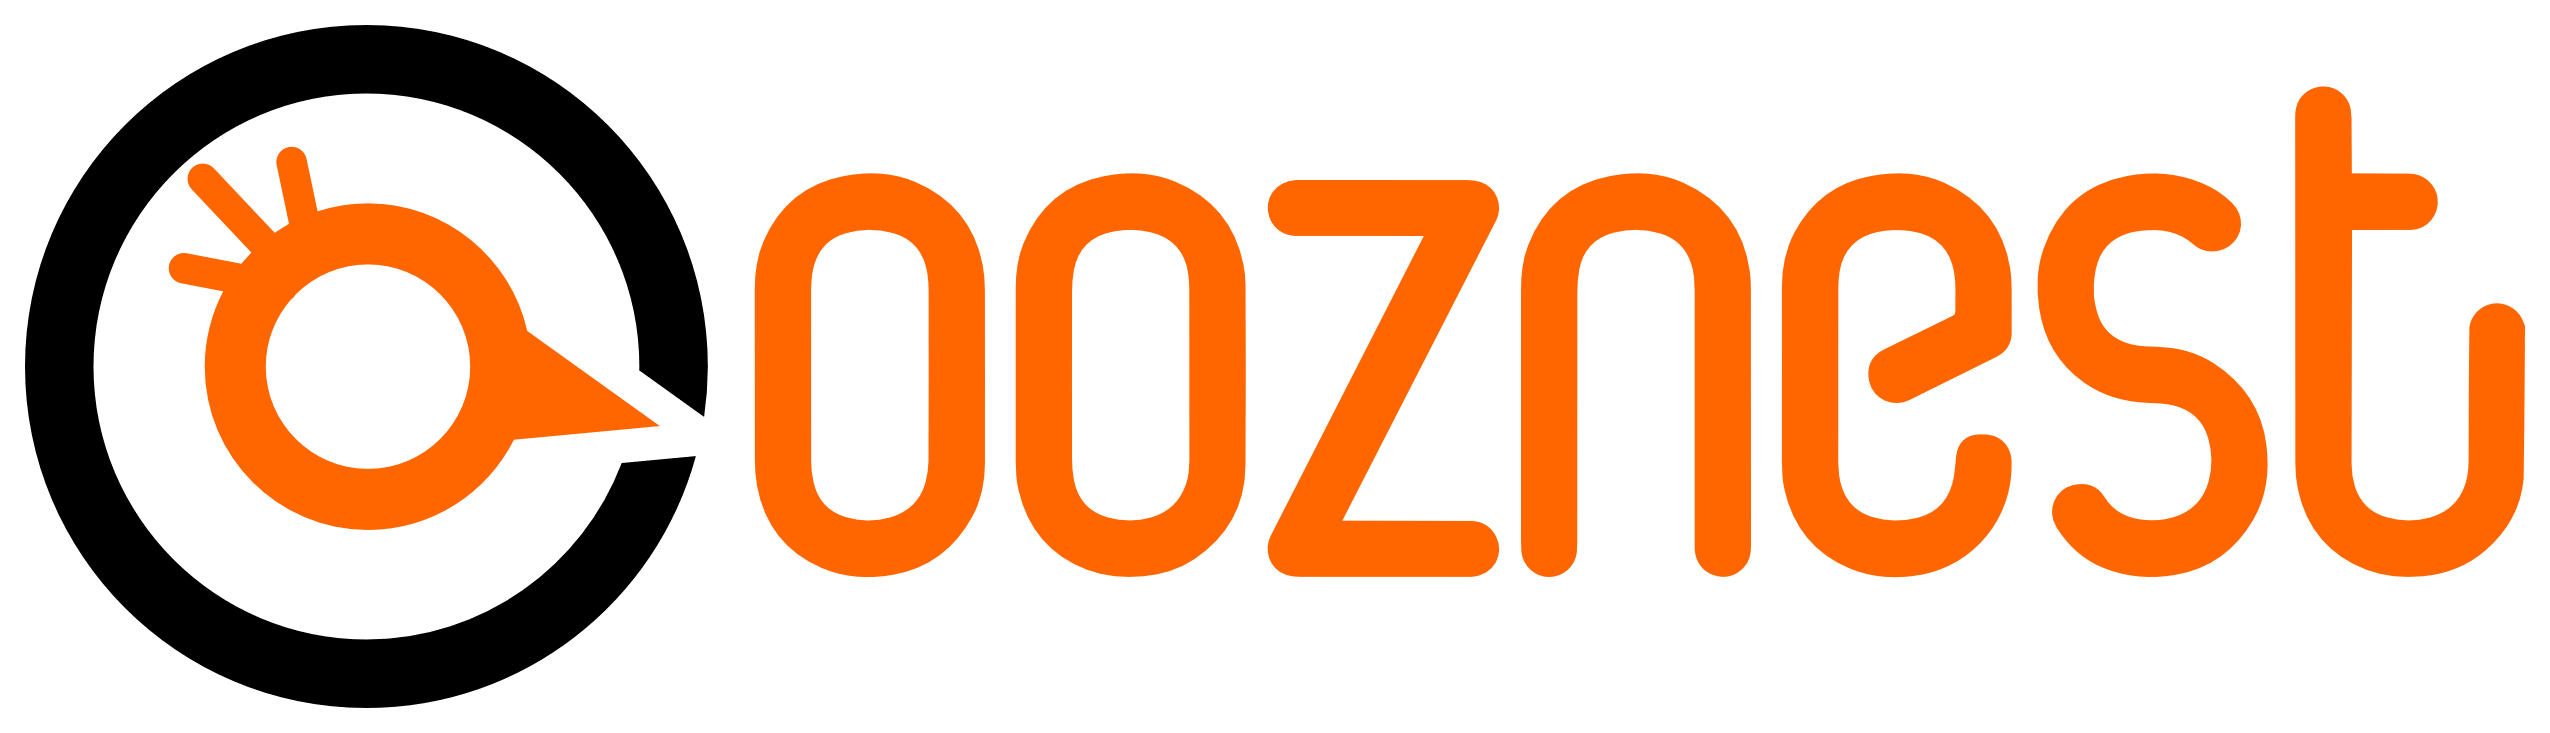 Ooznest | 3D Printers & CNC Machines | Parts, Kits & More